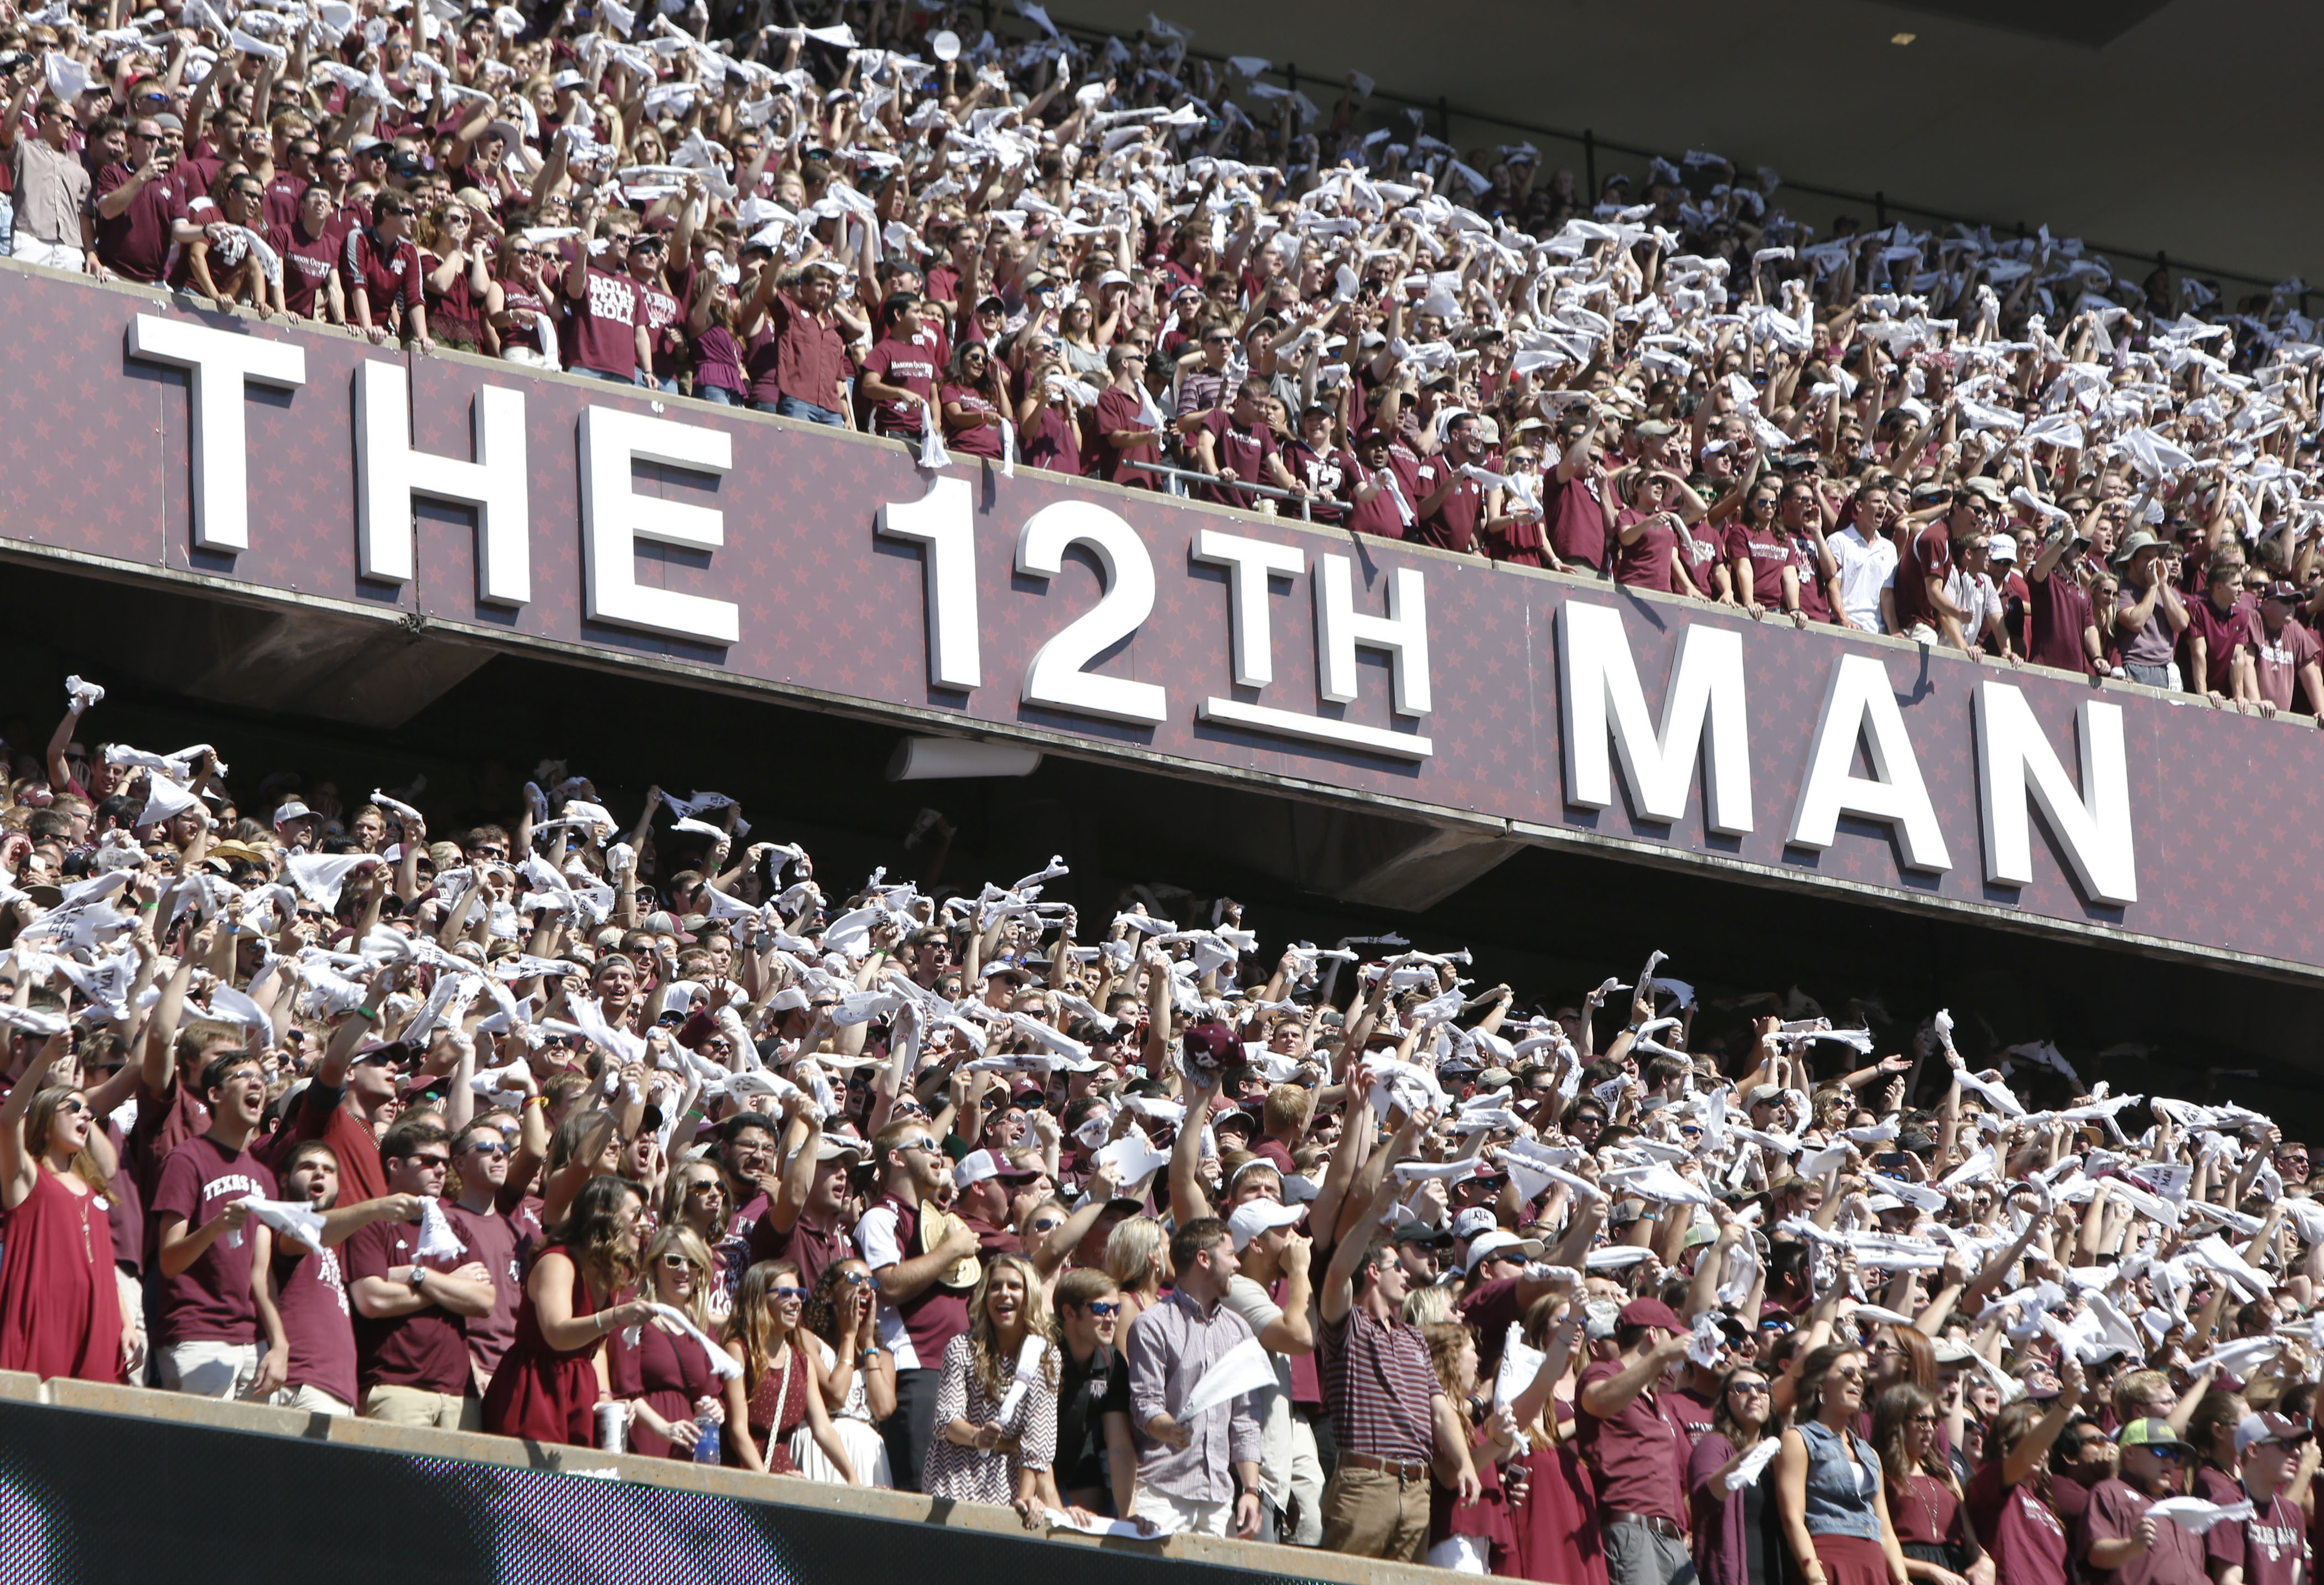 The 12th Man showed up to yesterday's game.